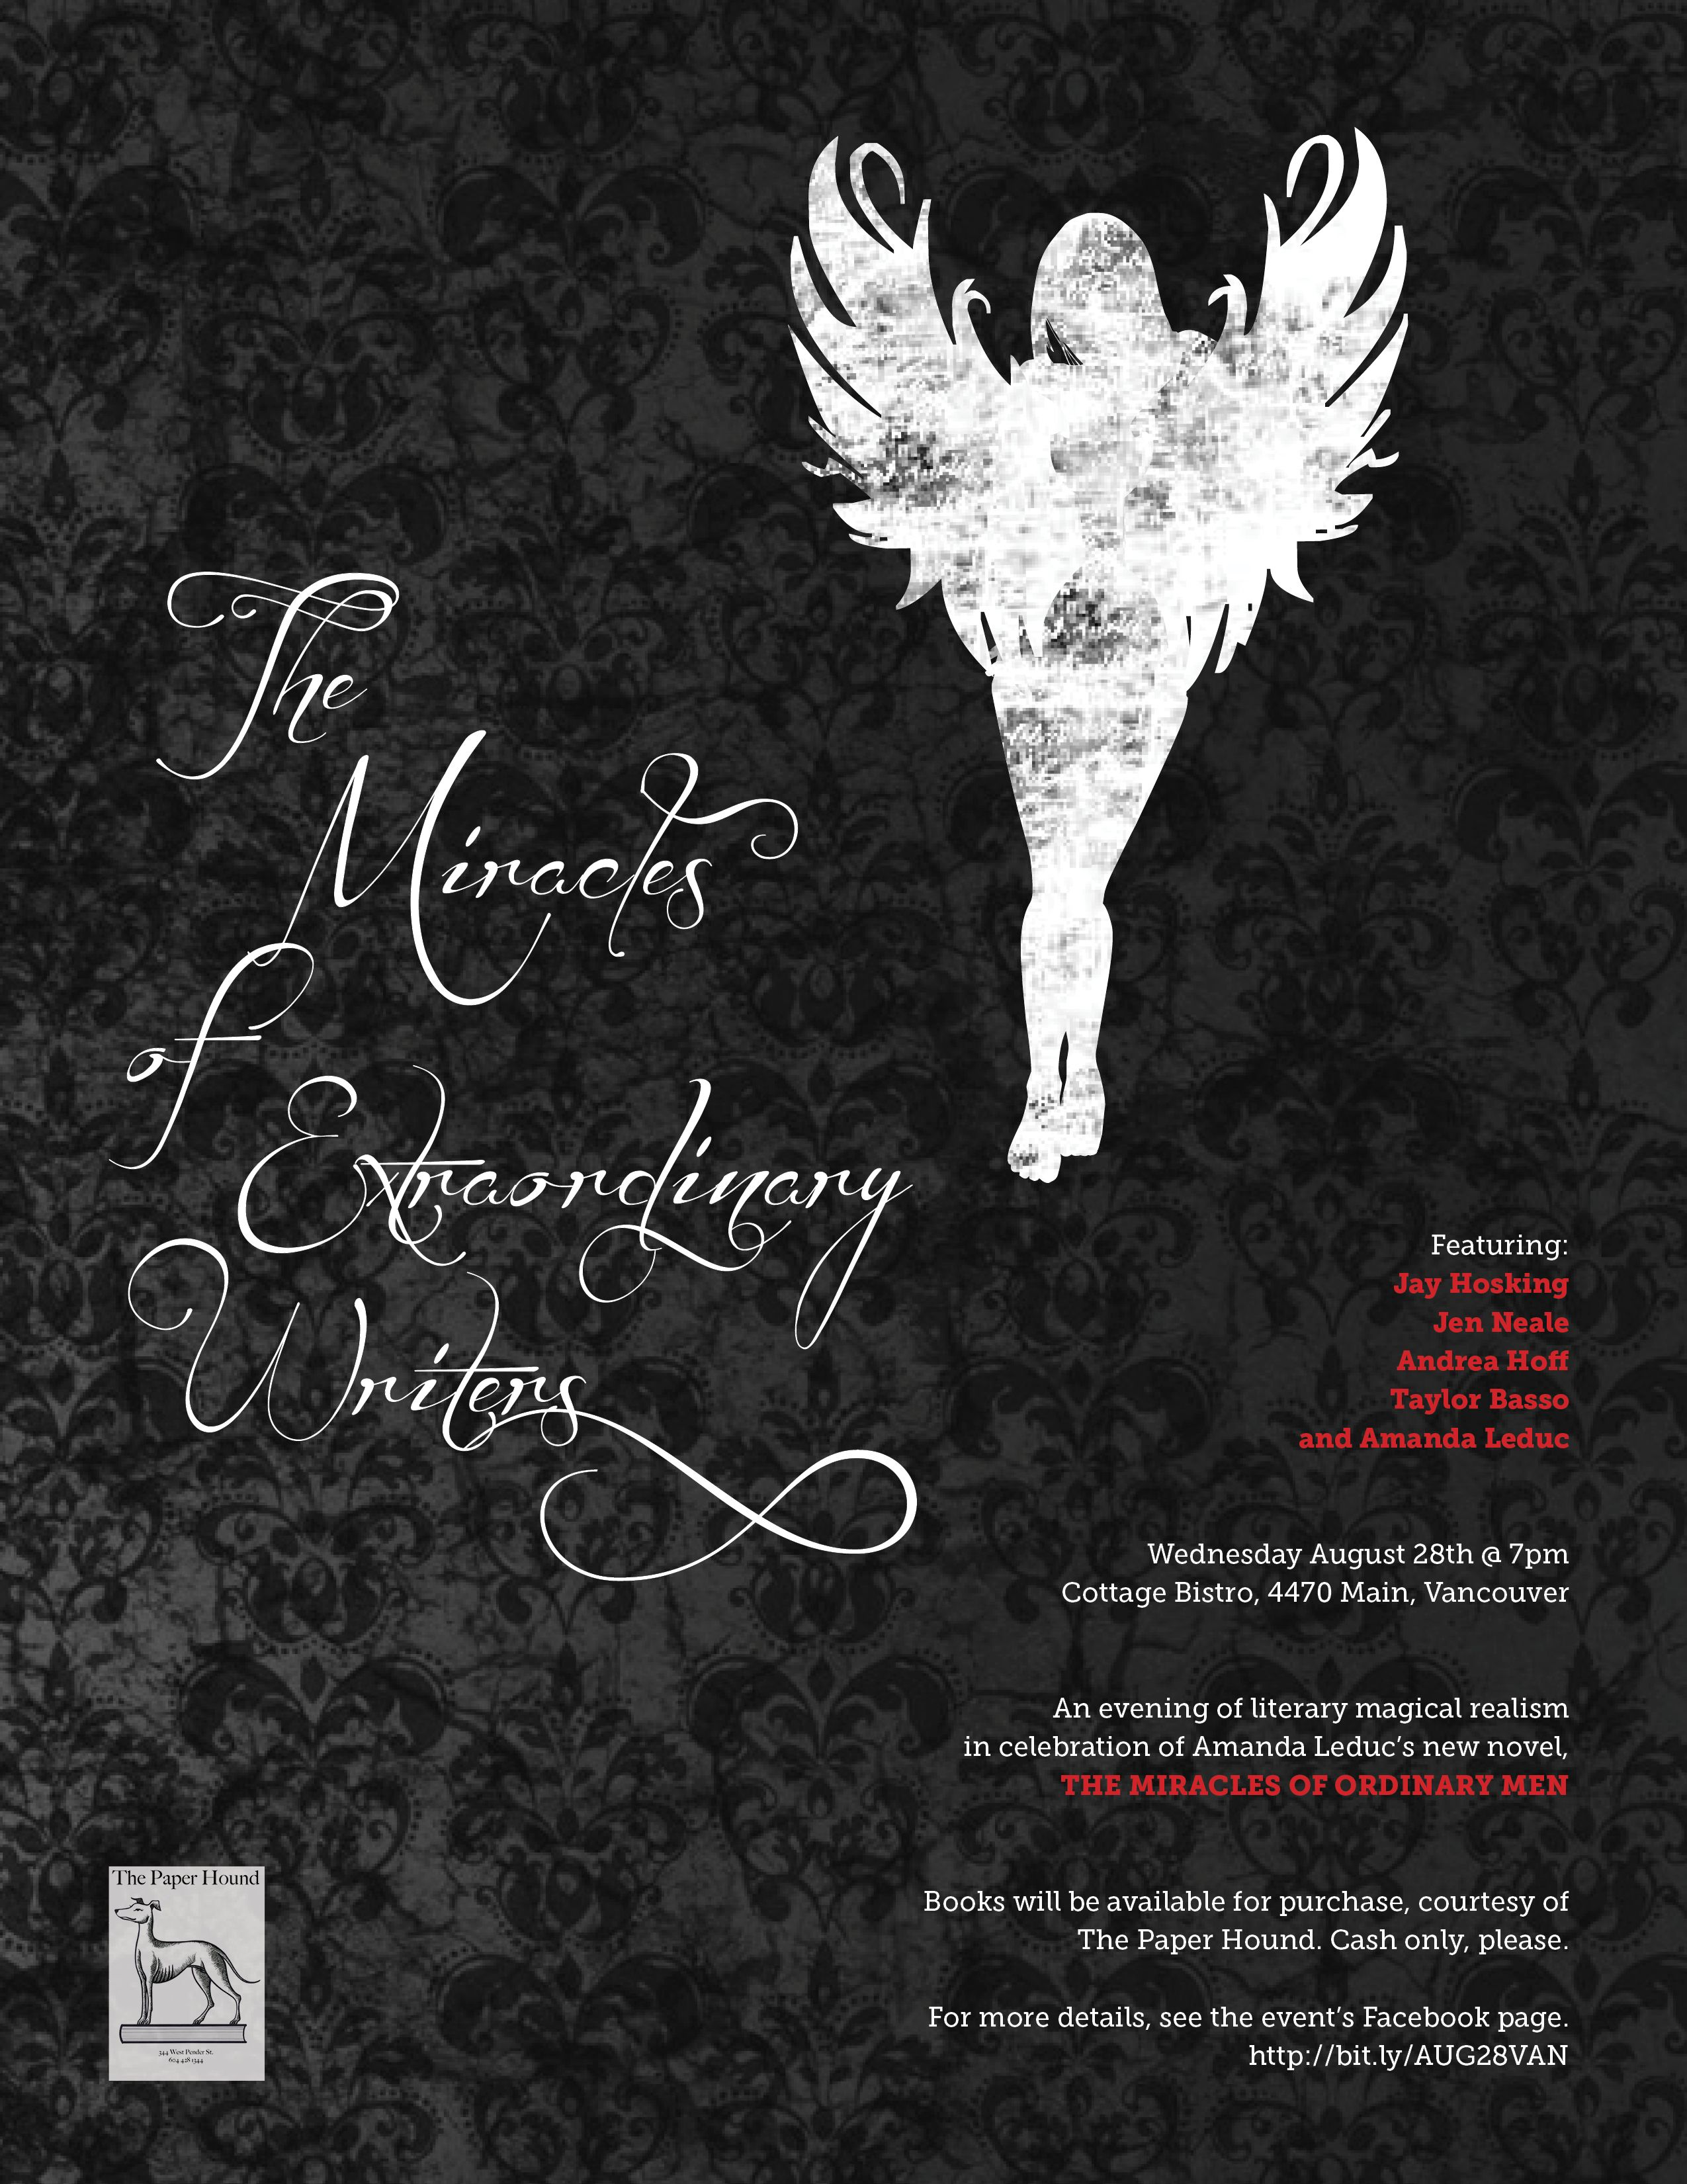 Poster for a reading event in Vancouver featuring Amanda Leduc, Jay Hosking, Jen Neale, Andrea Hoff and Taylor Basso.